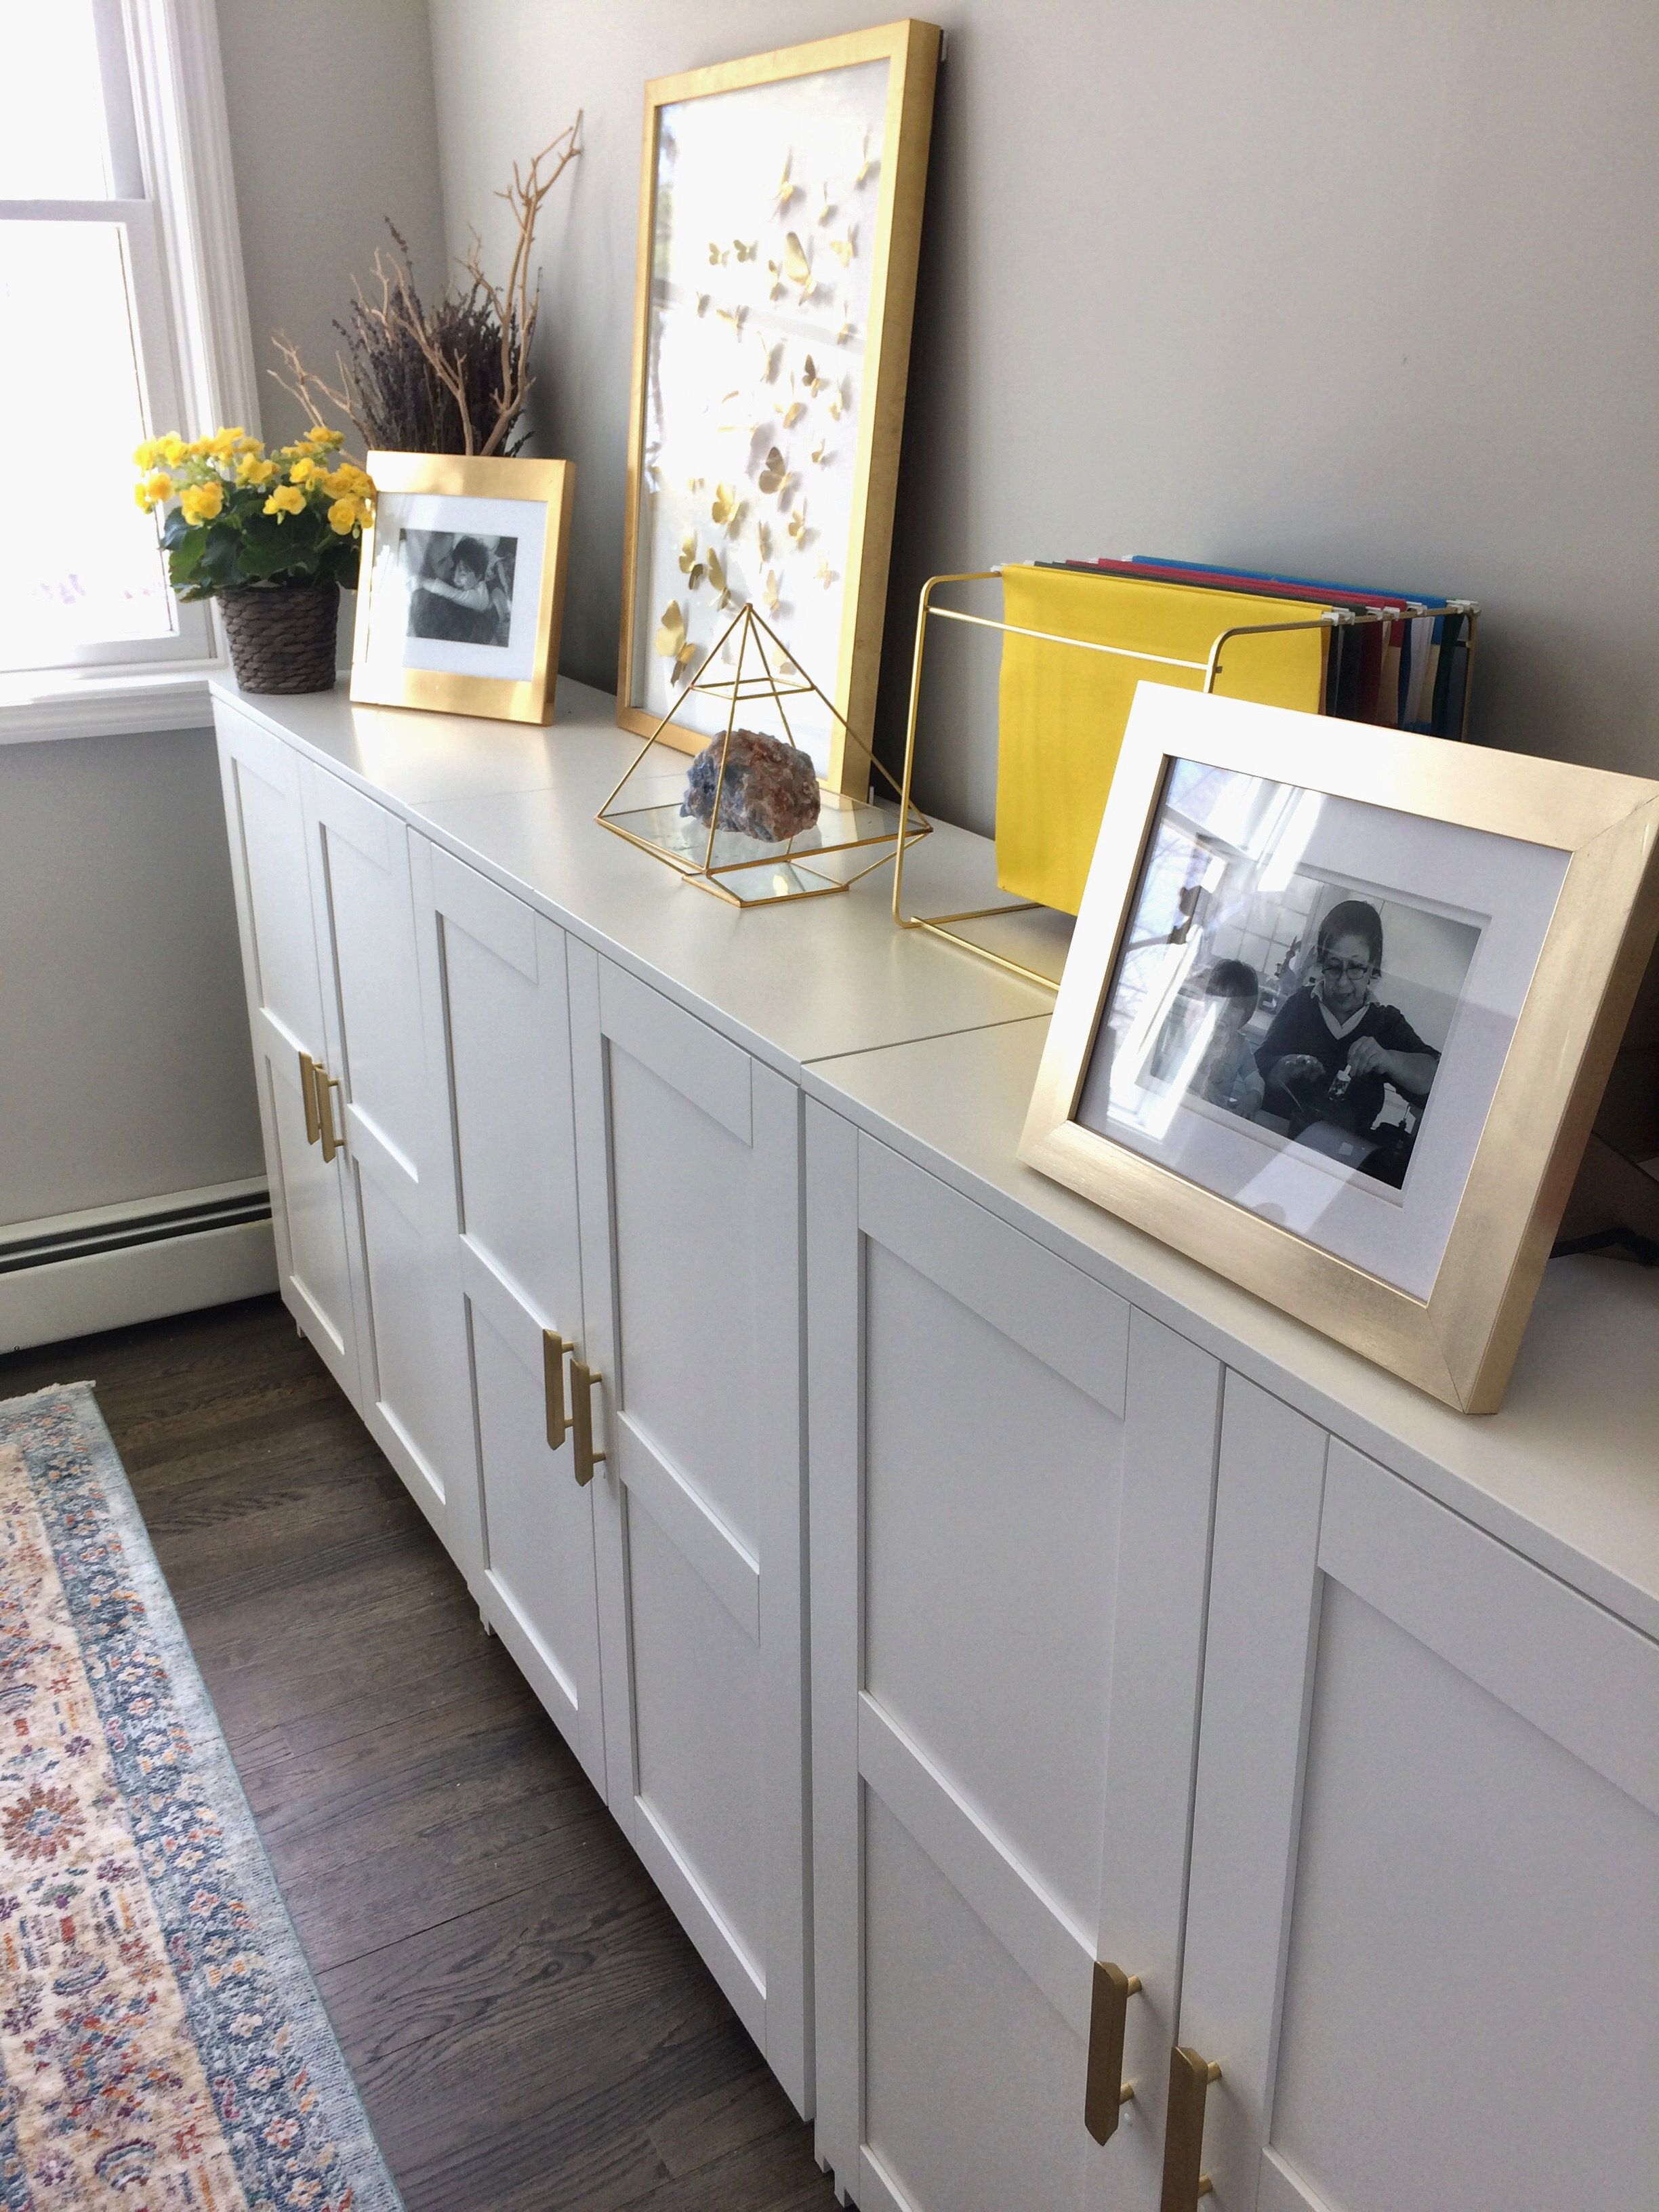 Ikea Brimnes Cabinets With Gold Pulls House Projects In A Budget